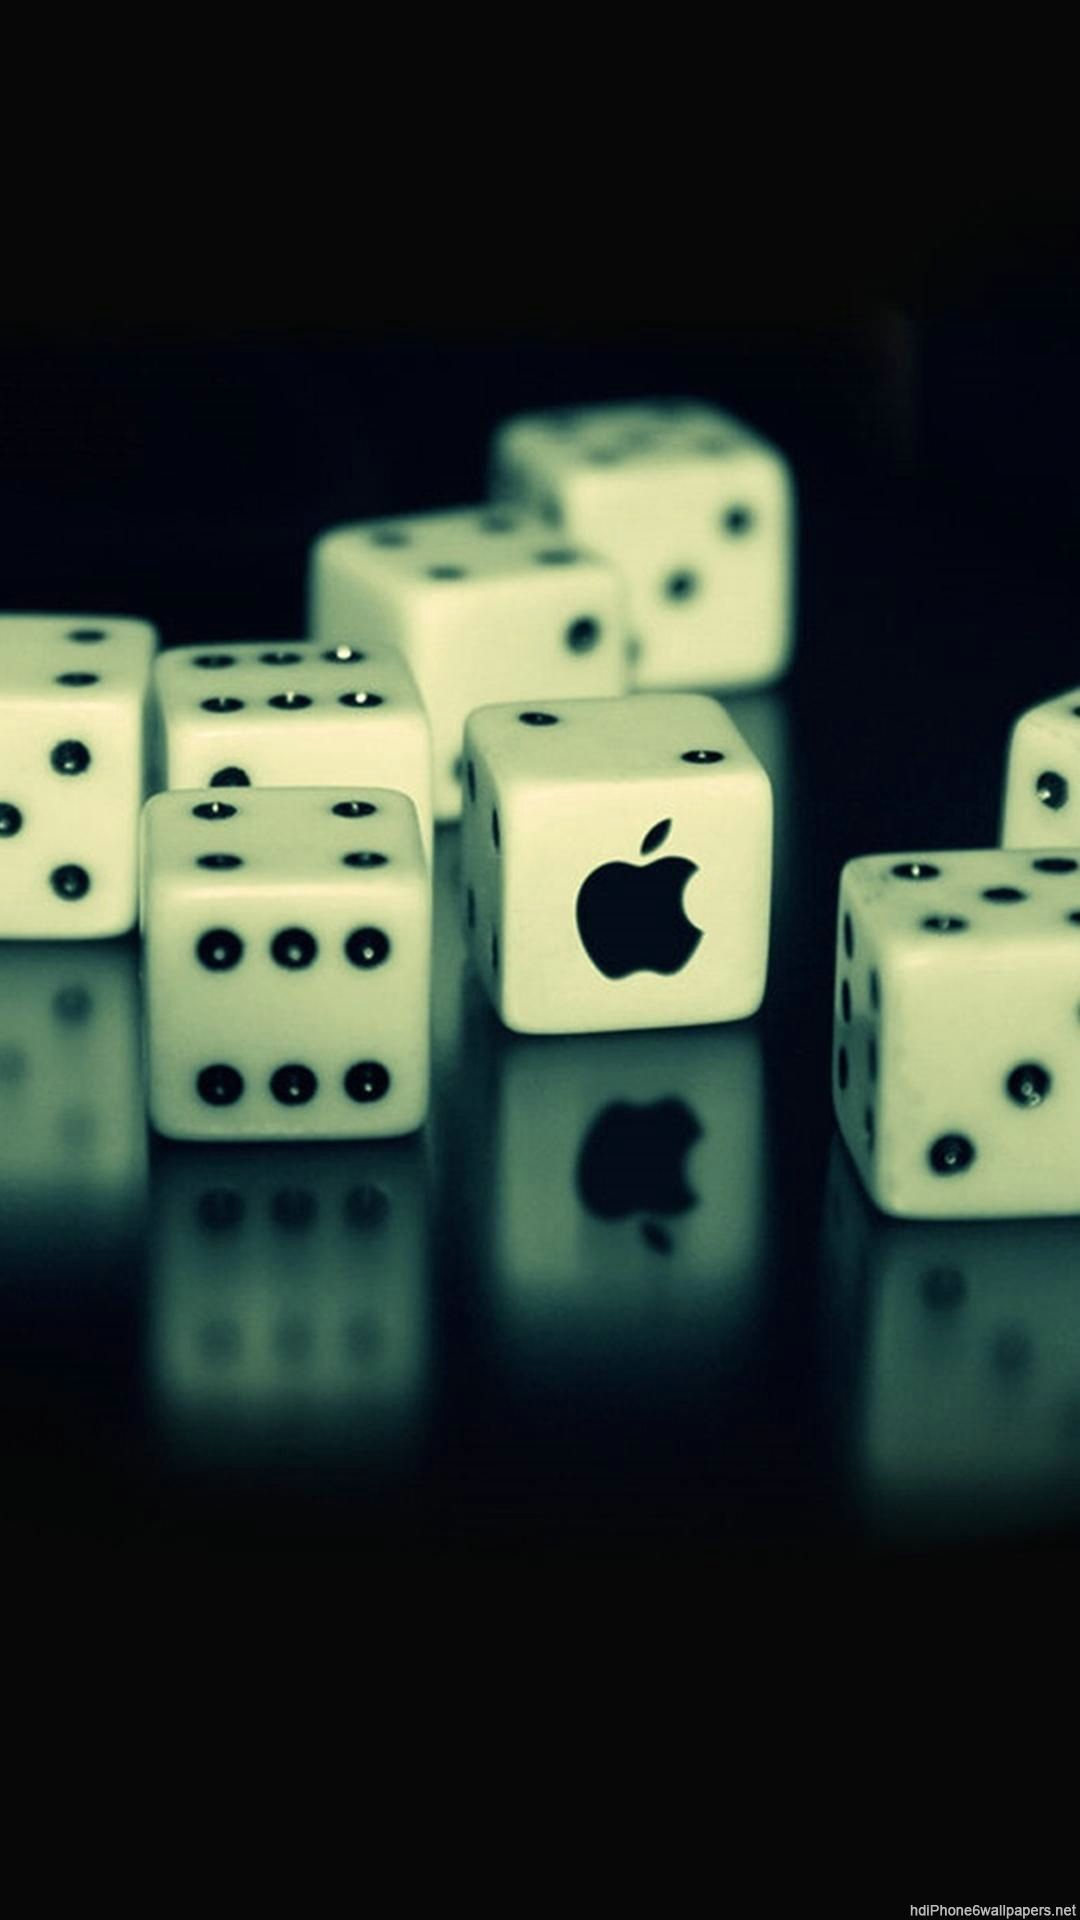 Apple Dice Computer Iphone 6 Wallpapers Hd And 1080p - Best Wallpapers For I Phone - HD Wallpaper